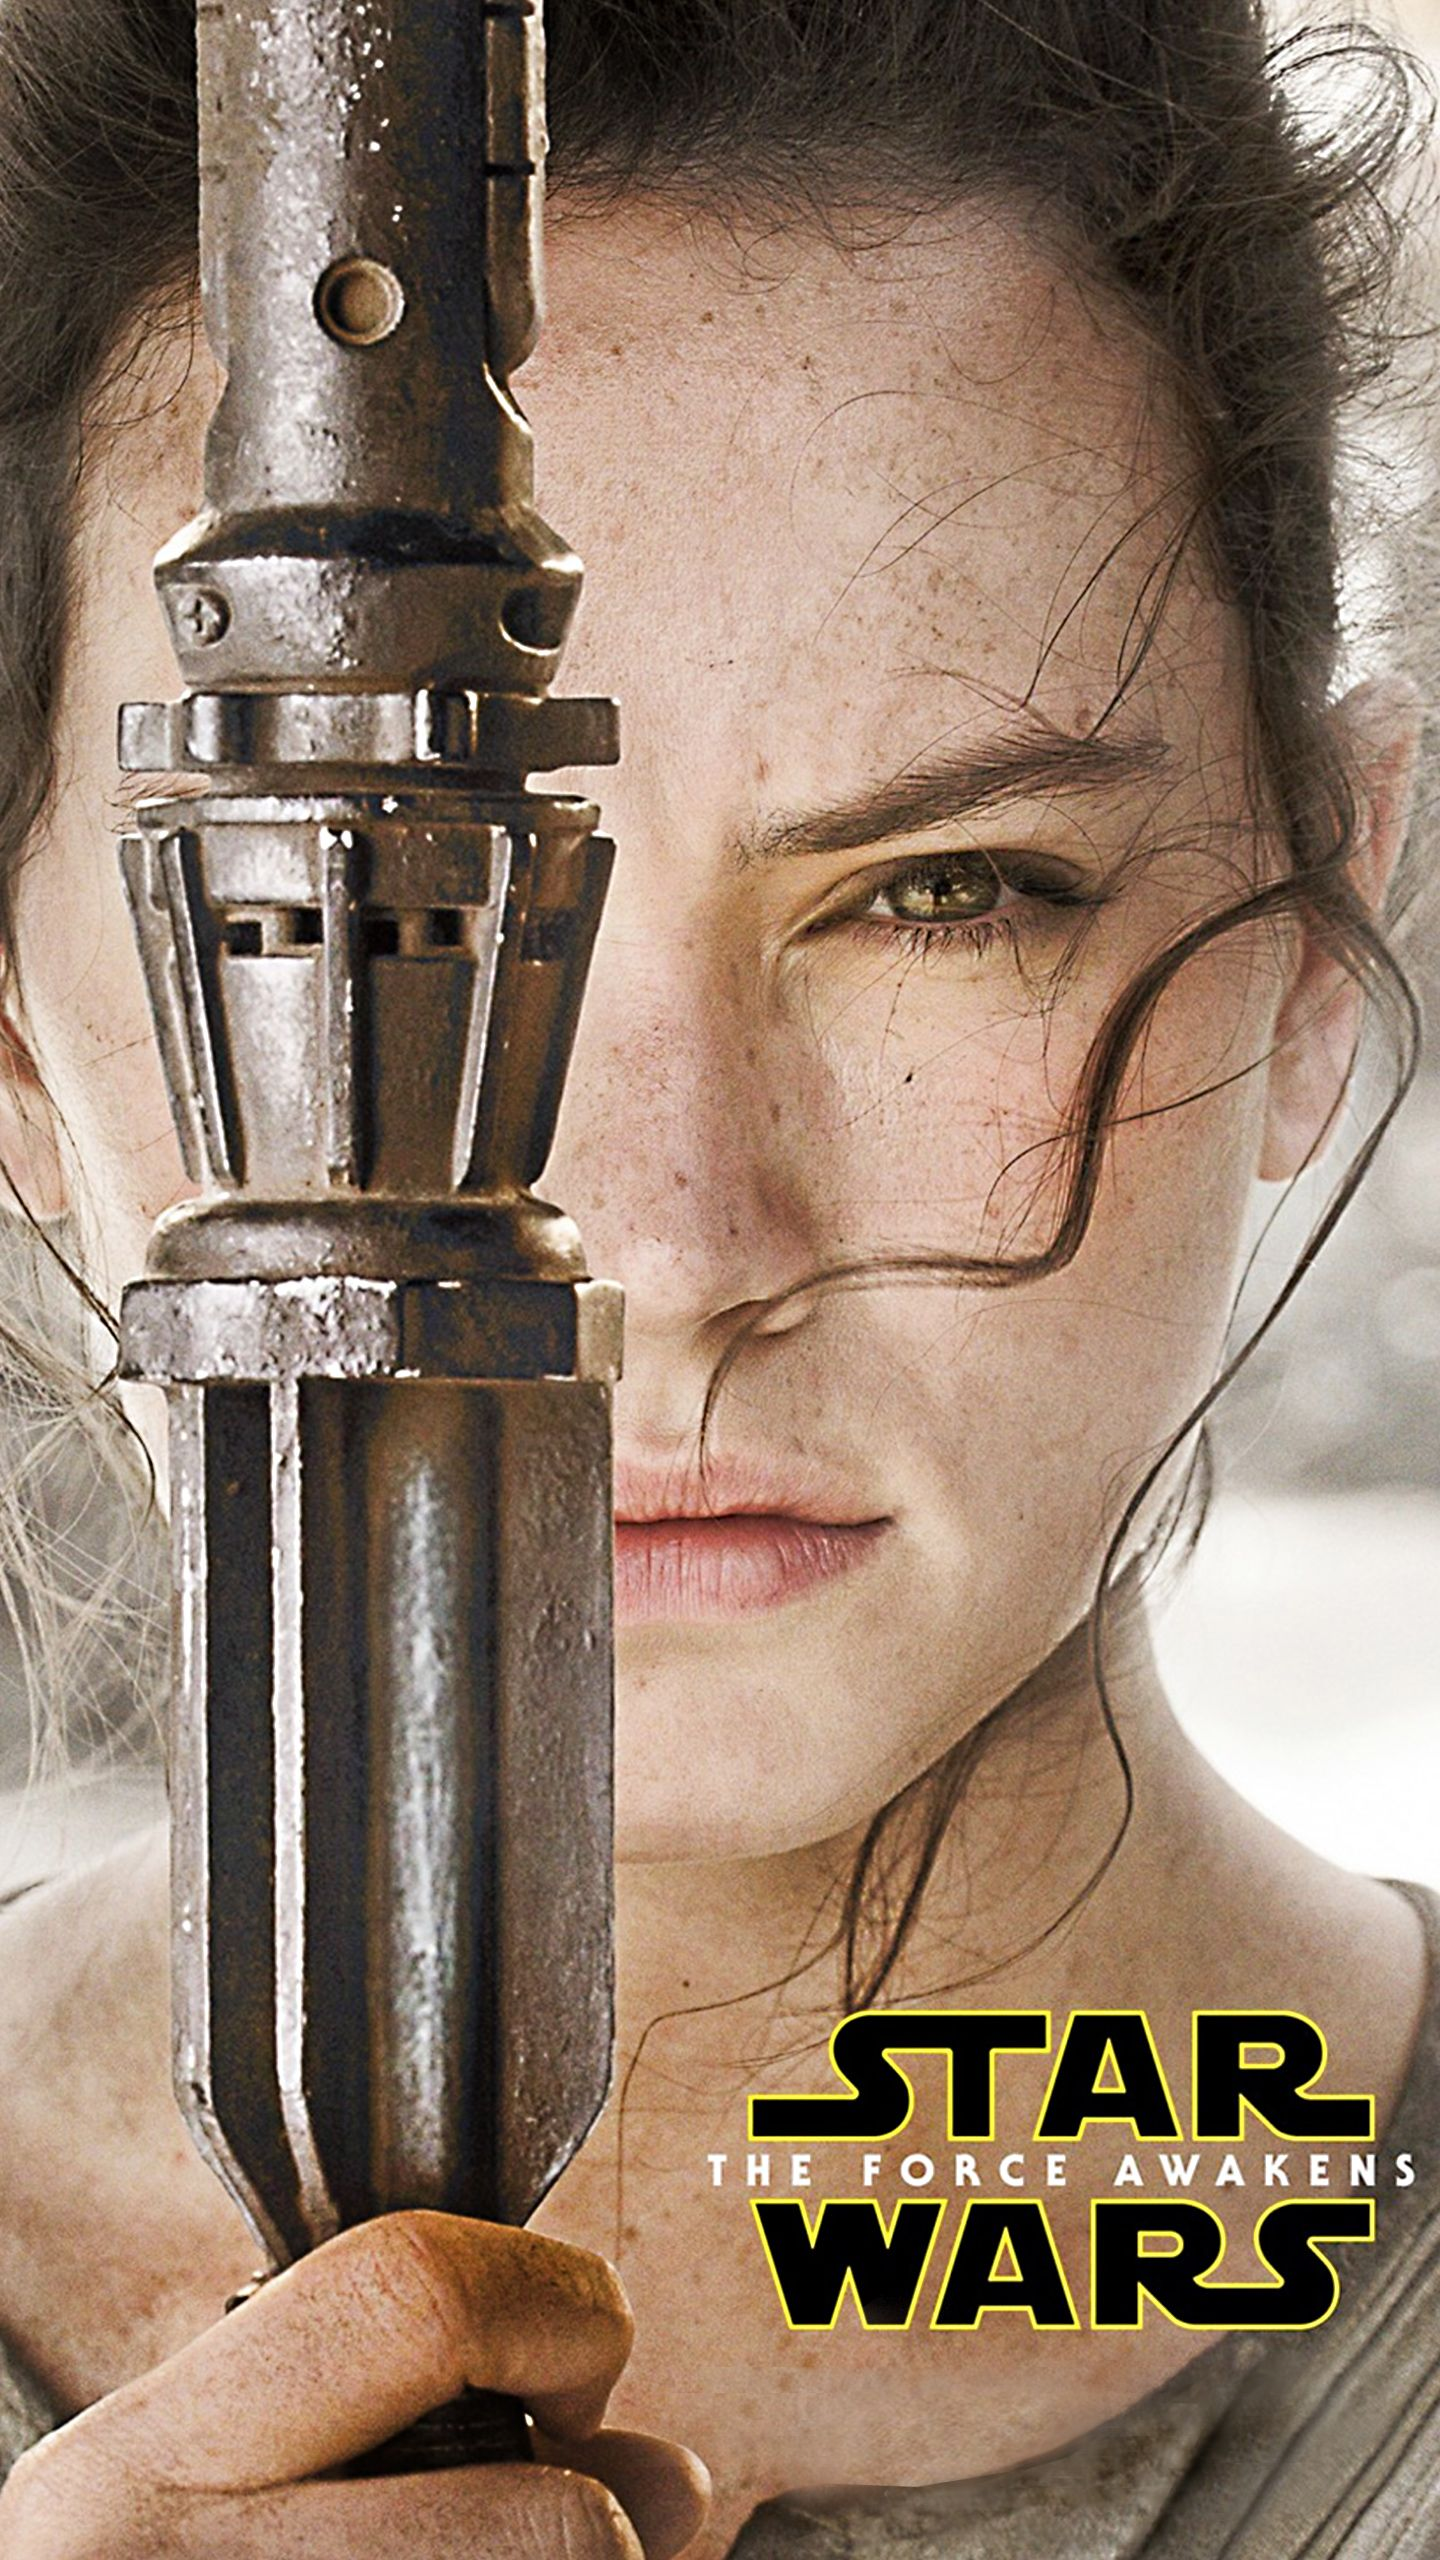 1440x2560 Rey Star Wars 7 The Force Awakens Smartphone Wallpaper | Gallery ...